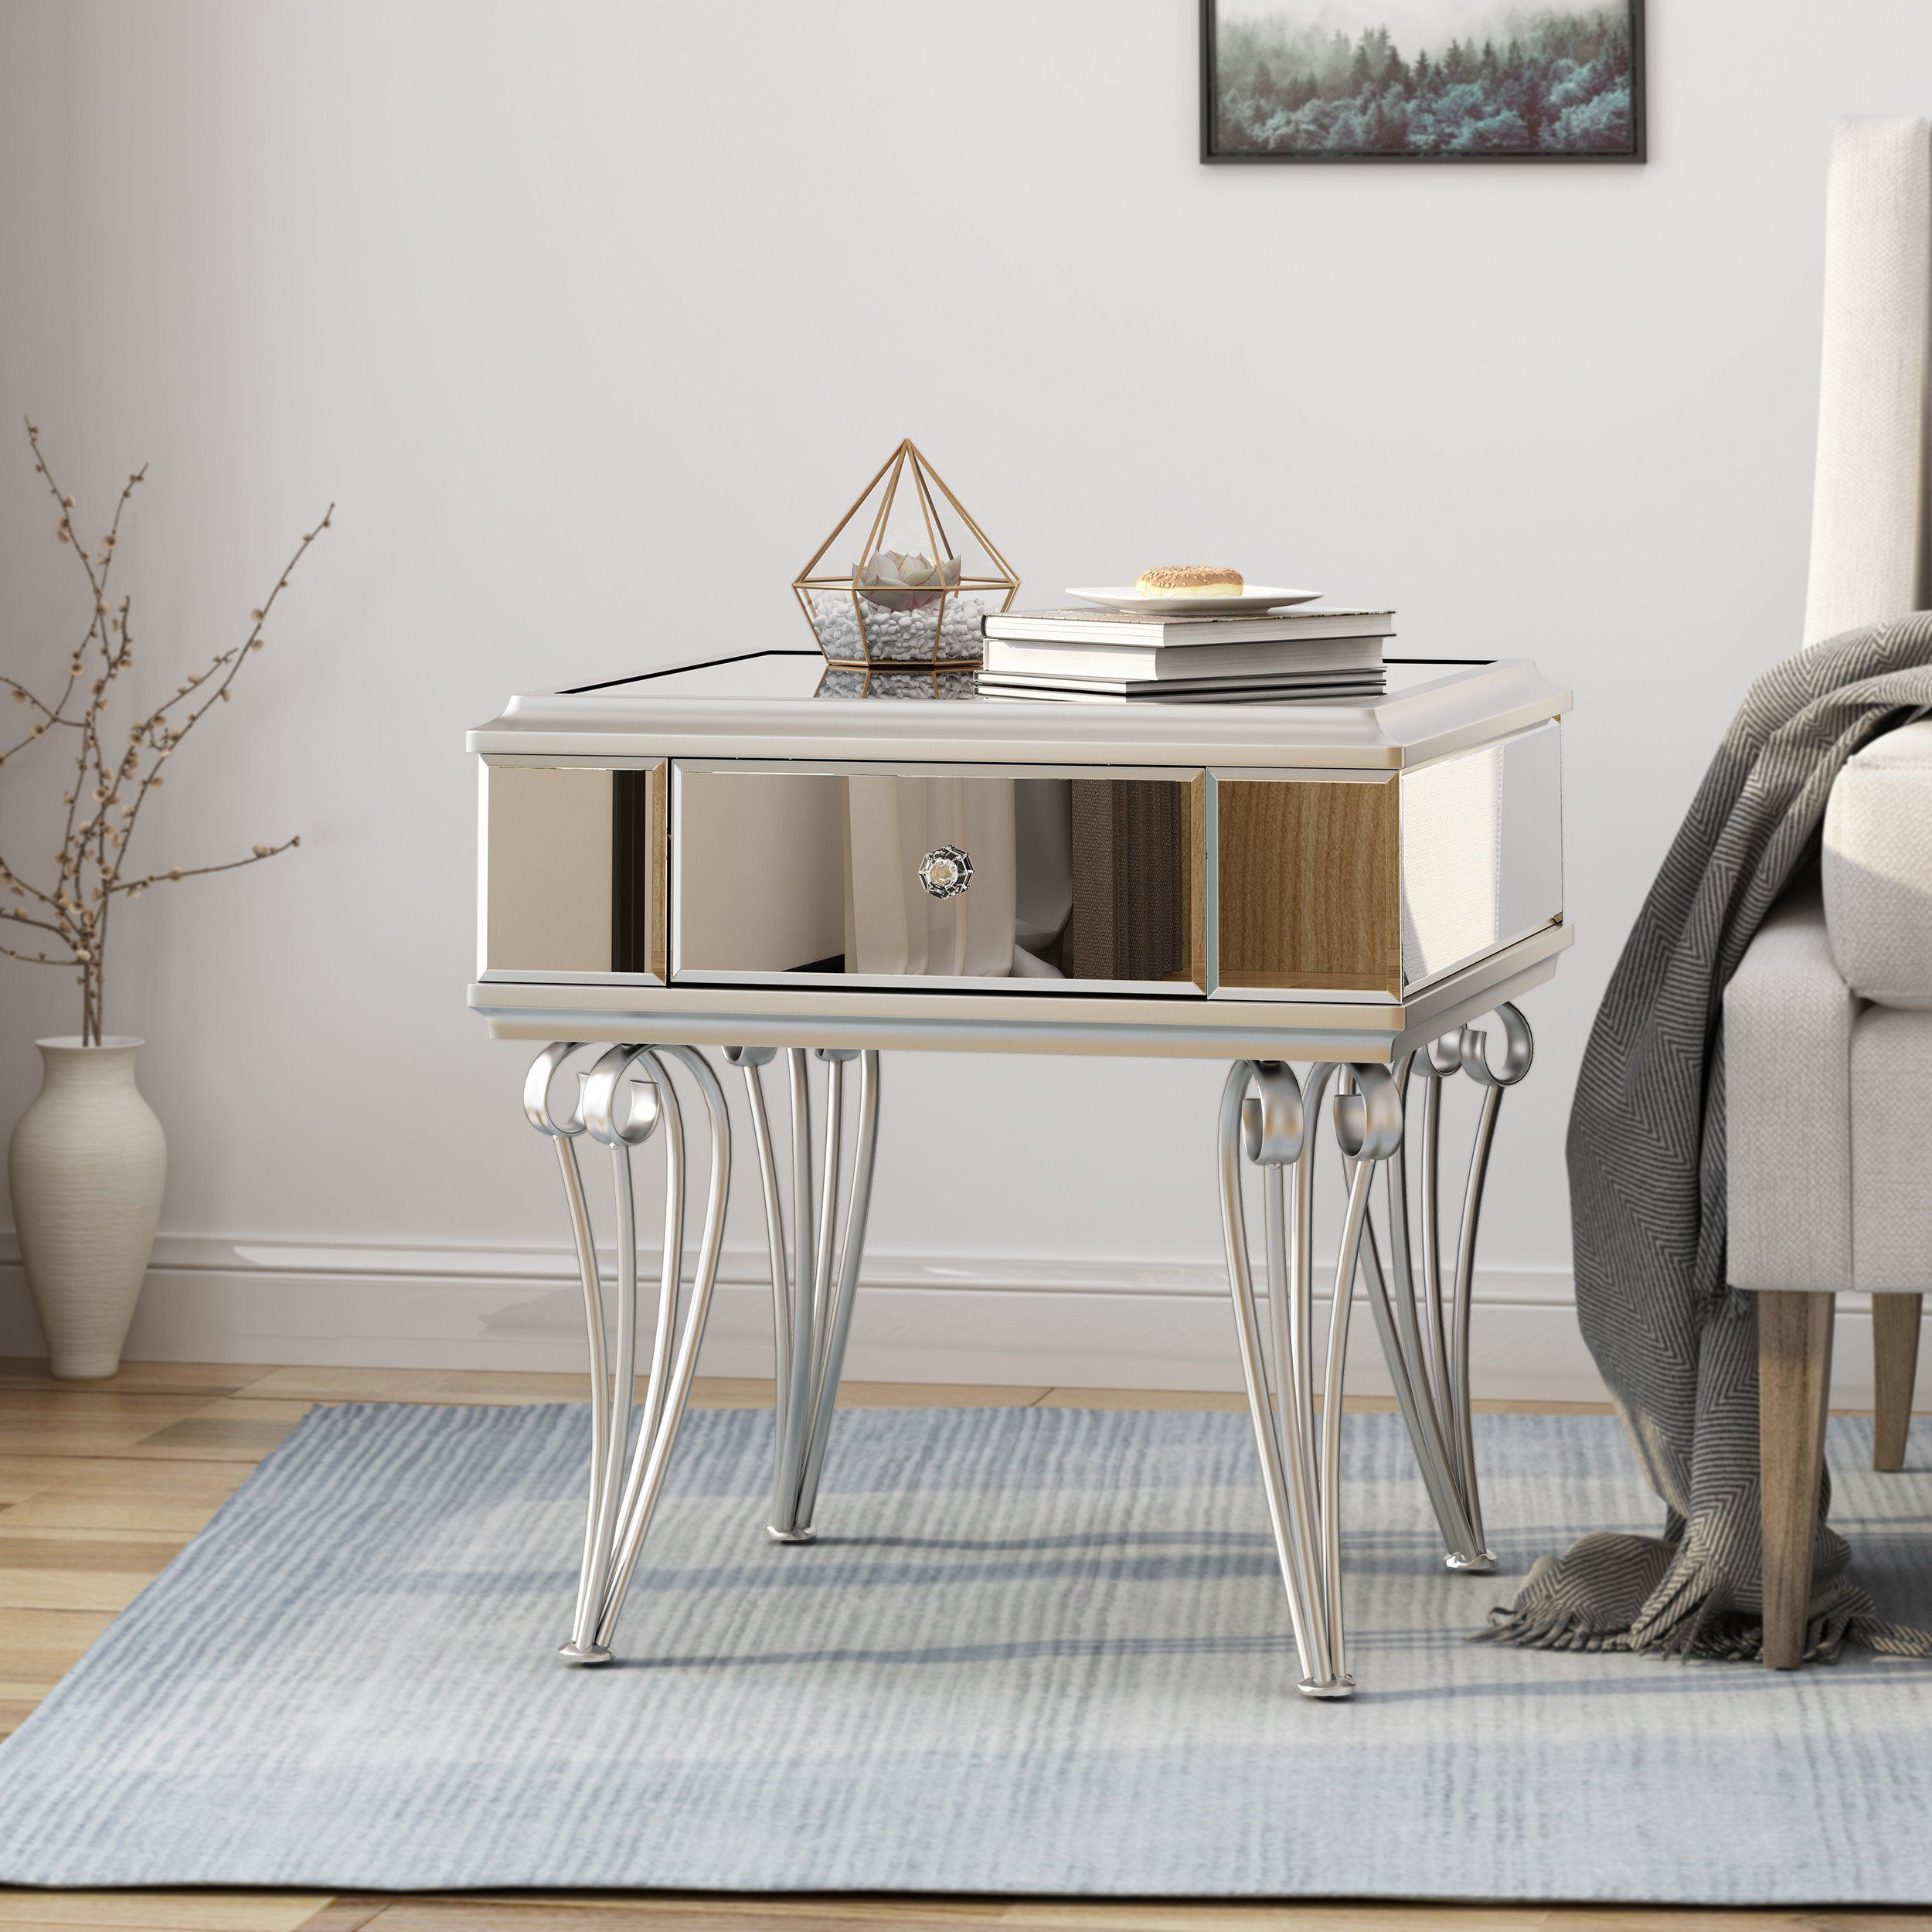 Mamie Modern Mirrored Accent Table With Drawer Tempered Glass In 2021 Mirrored Accent Table Accent Table Table Modern accent tables for living room